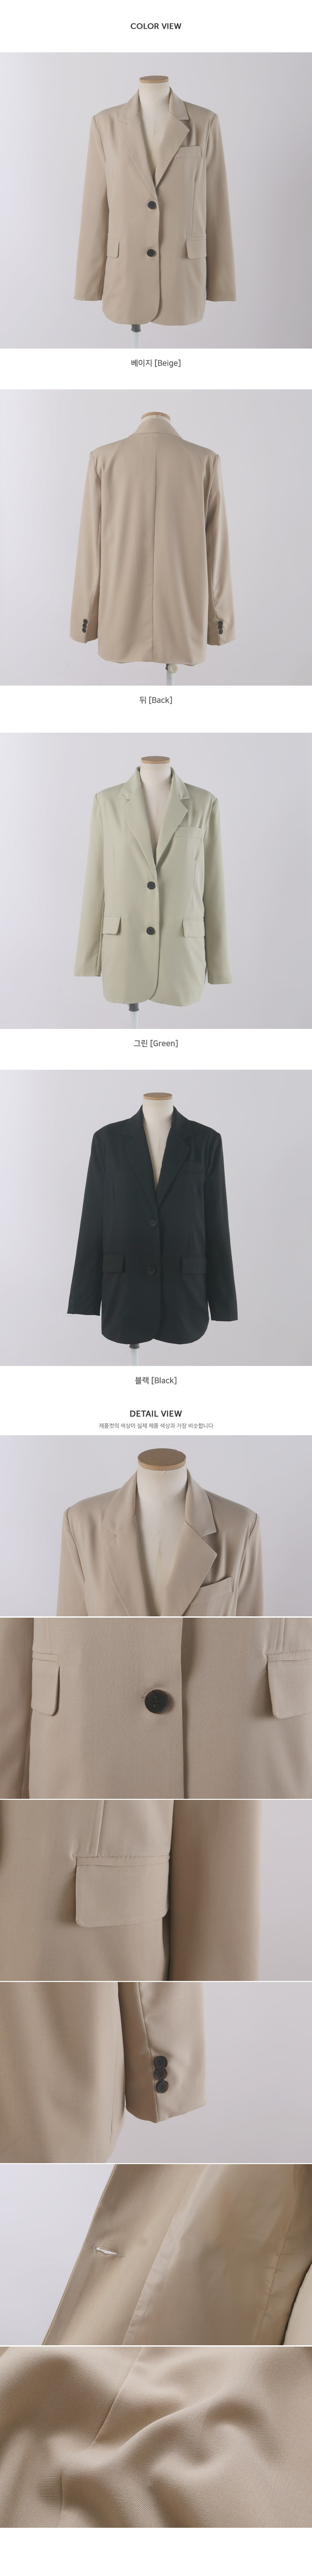 Roy basic overfit jacket